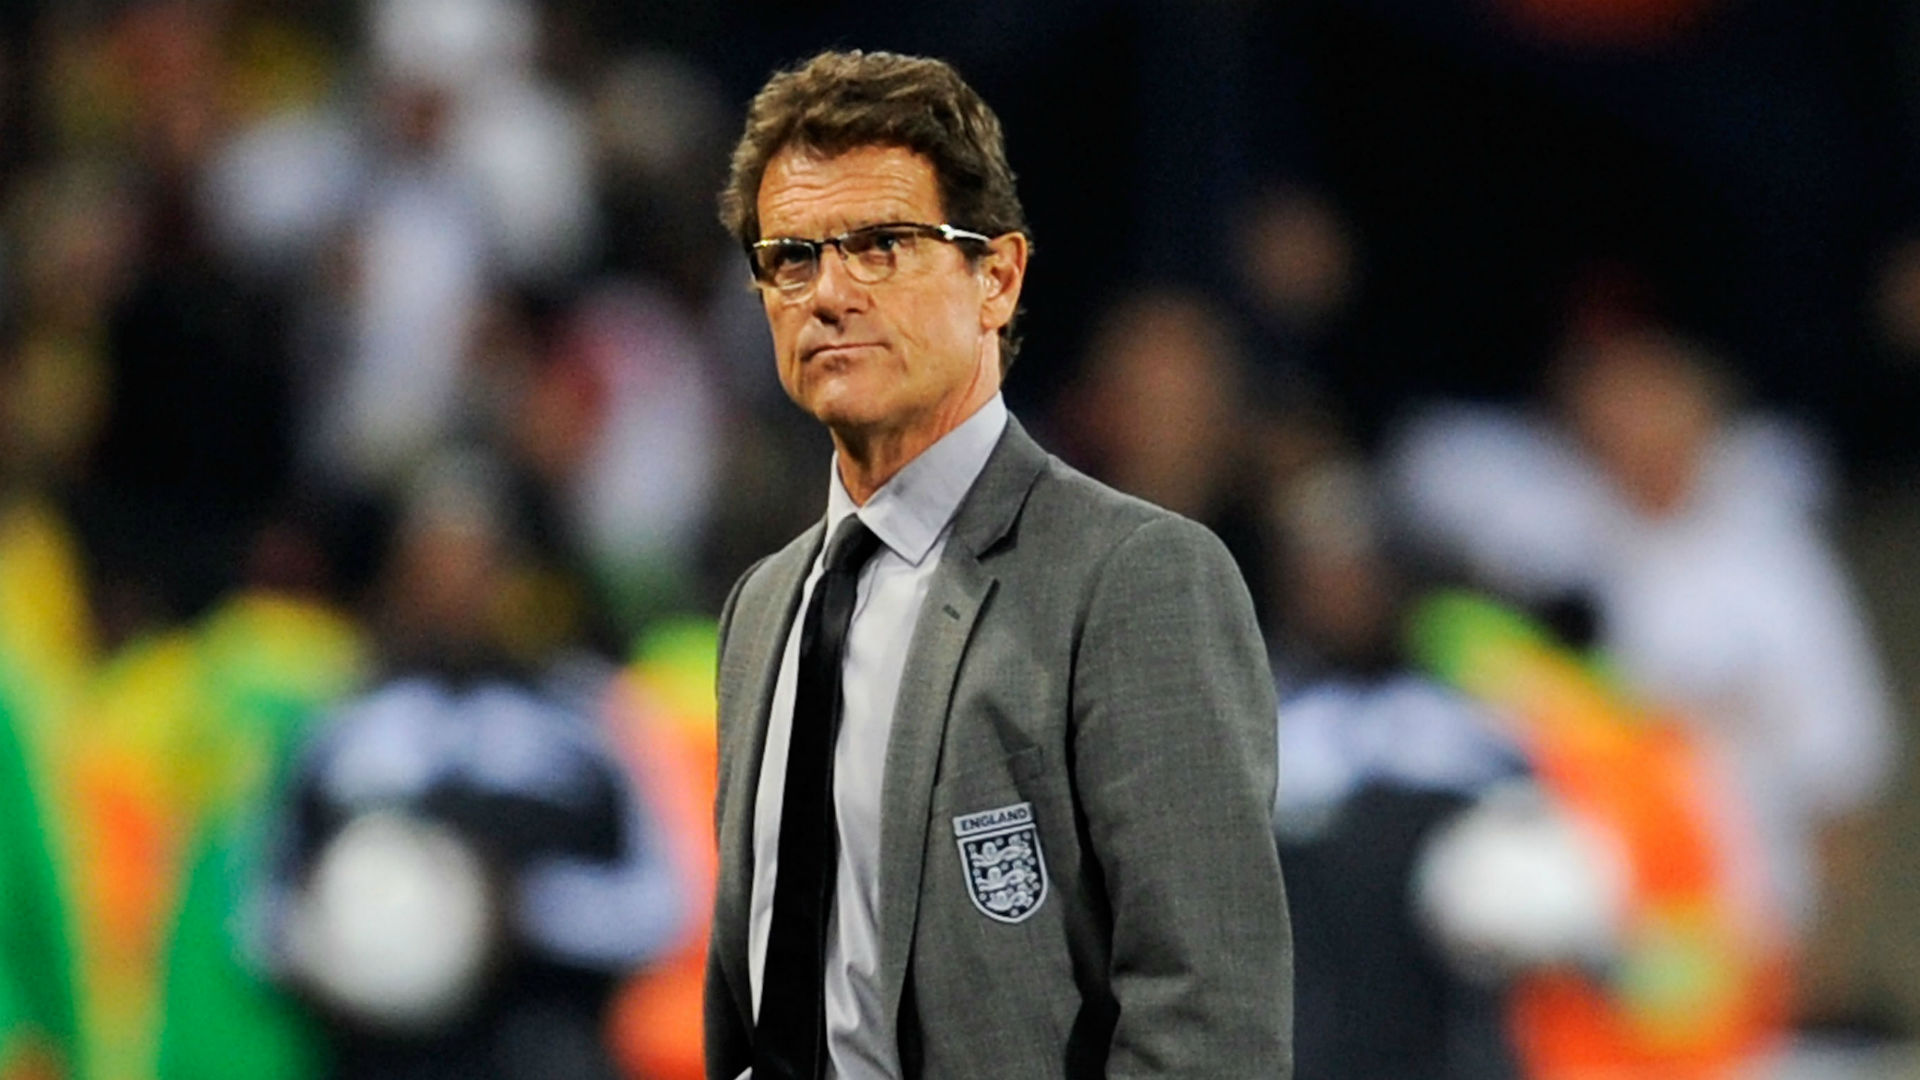 The England shirt weighs heavy - Capello claims Three Lions have mental block